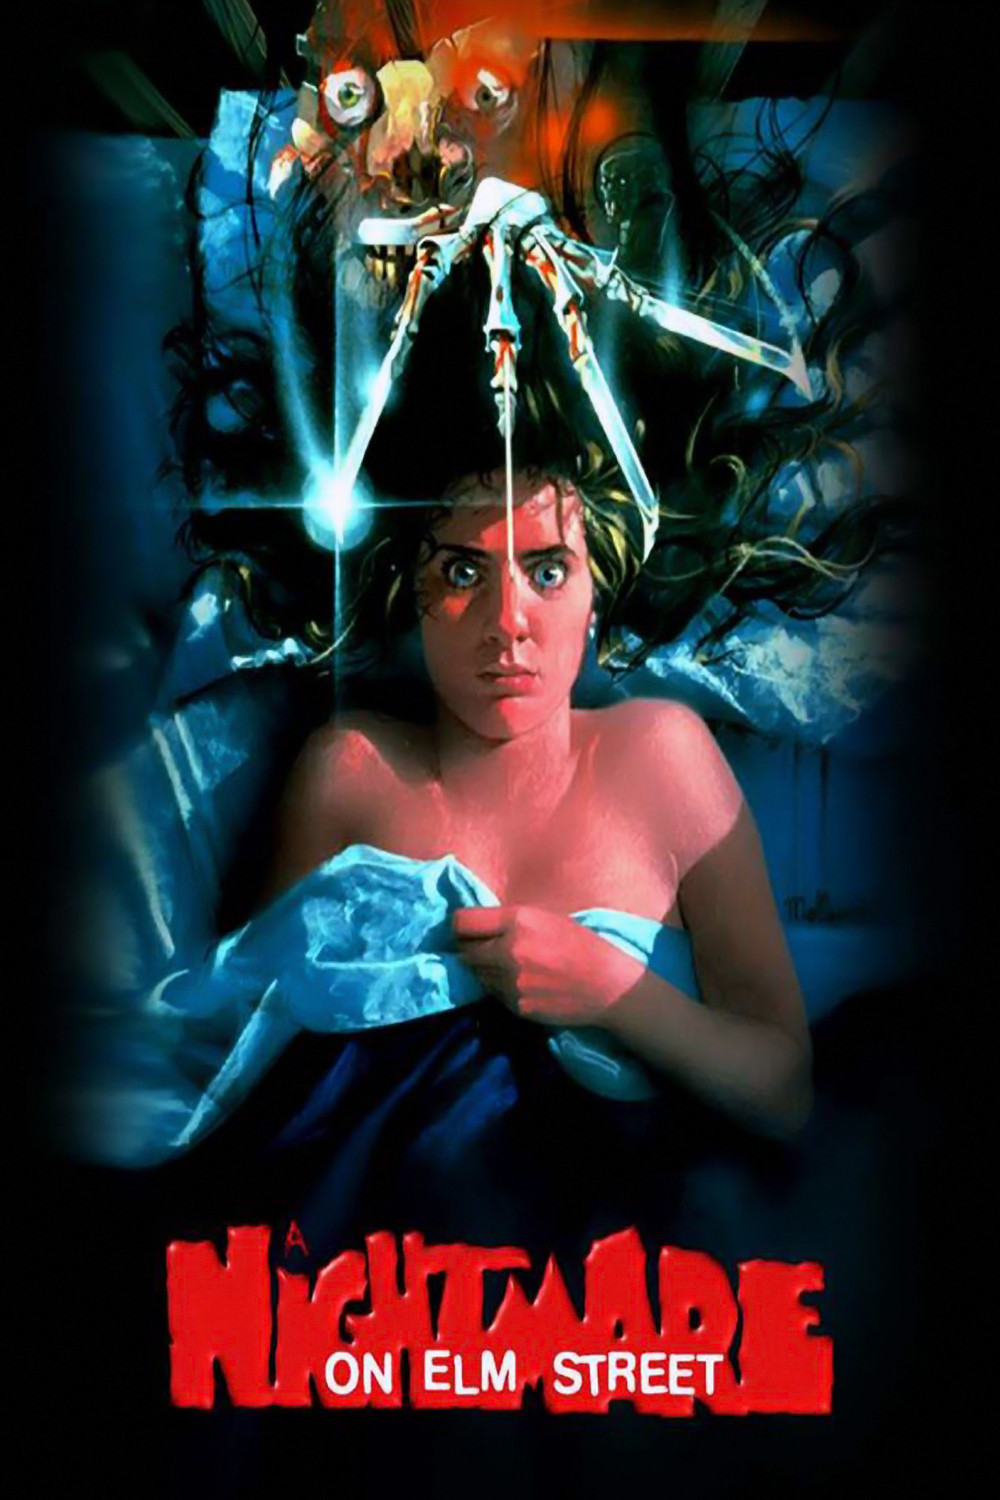 A NIGHTMARE ON ELM STREET (LES GRIFFES DE LA NUIT)